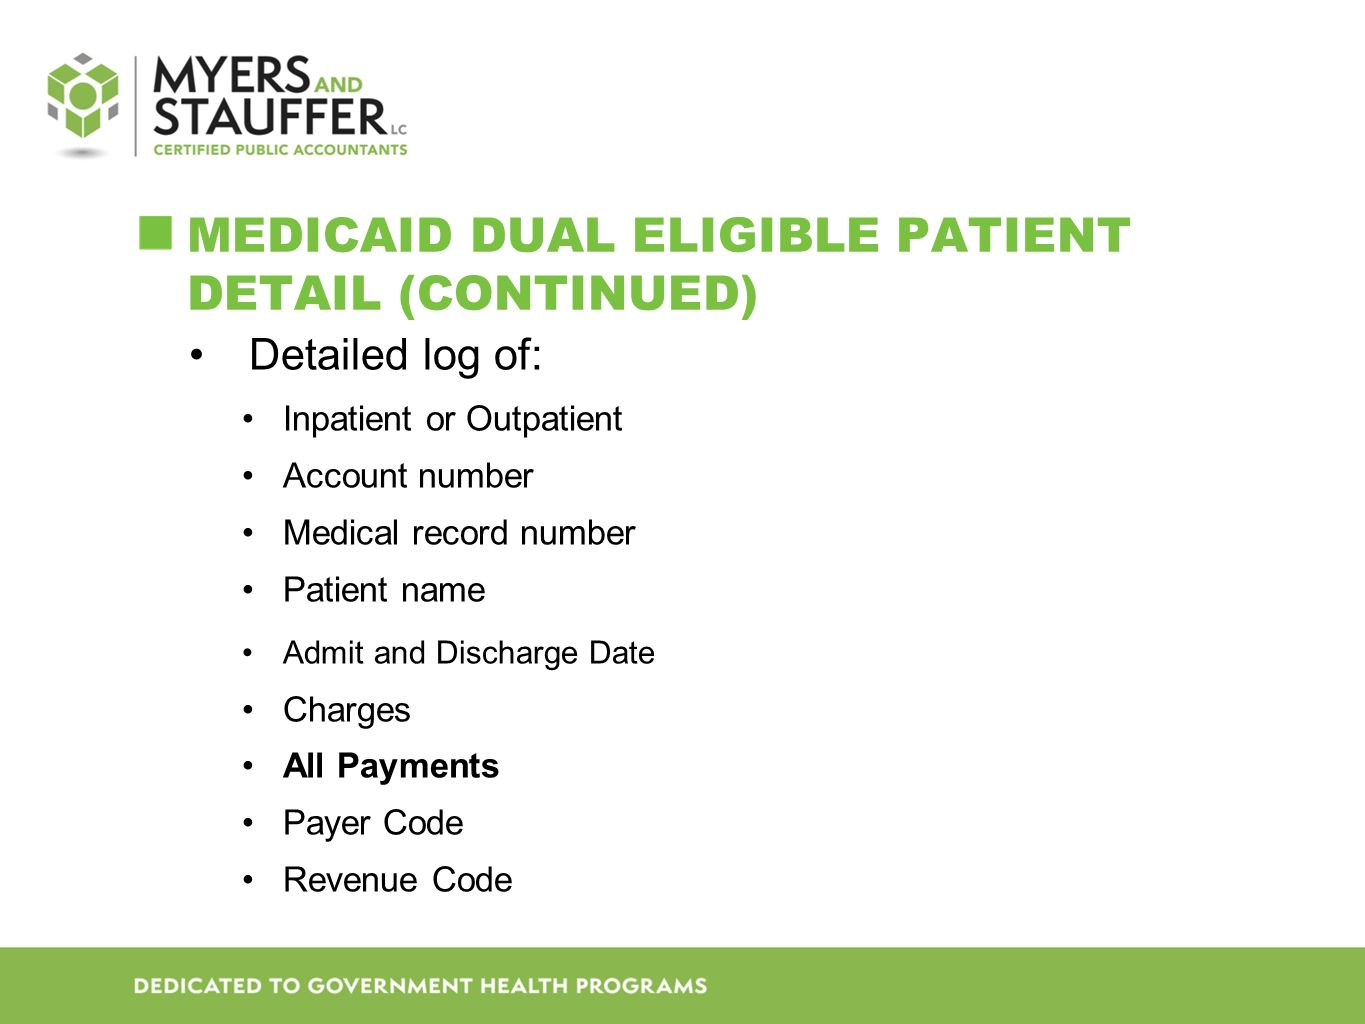 MEDICAID DUAL ELIGIBLE PATIENT DETAIL (CONTINUED) Detailed log of: Inpatient or Outpatient Account number Medical record number Patient name Admit and Discharge Date Charges All Payments Payer Code Revenue Code